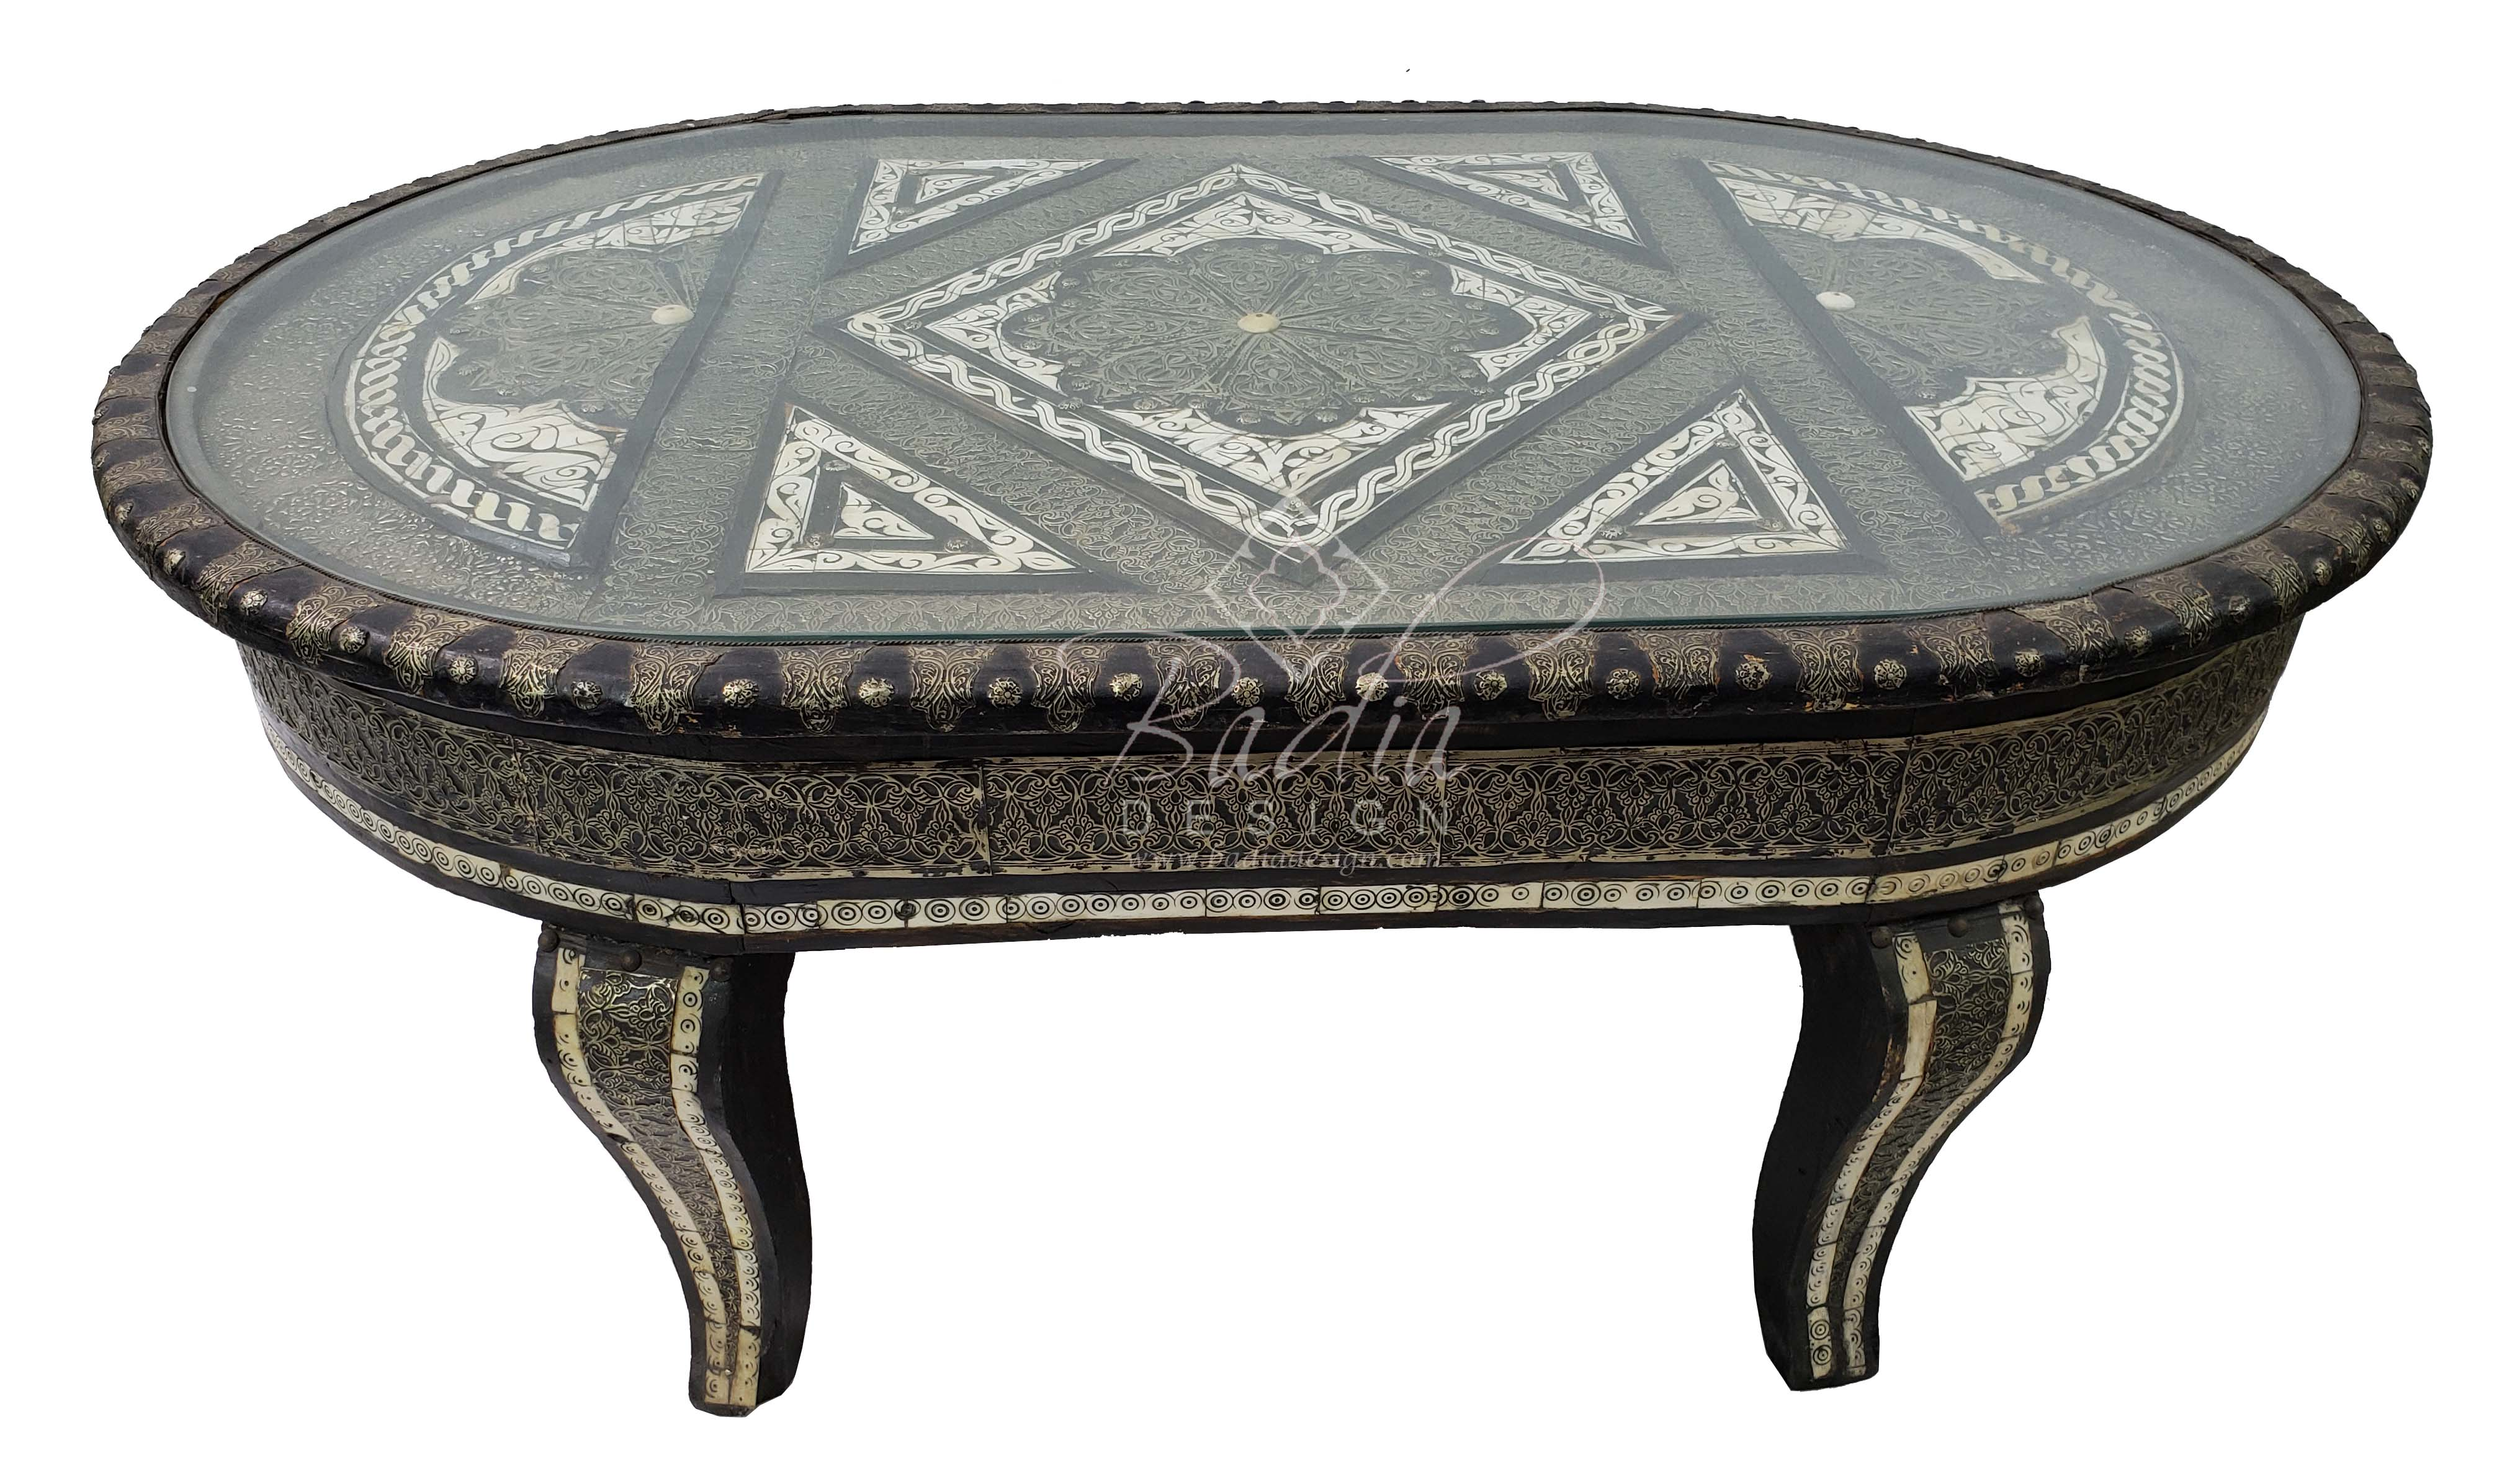 moroccan-oval-shaped-metal-and-bone-coffee-table-mb-ct019.jpg